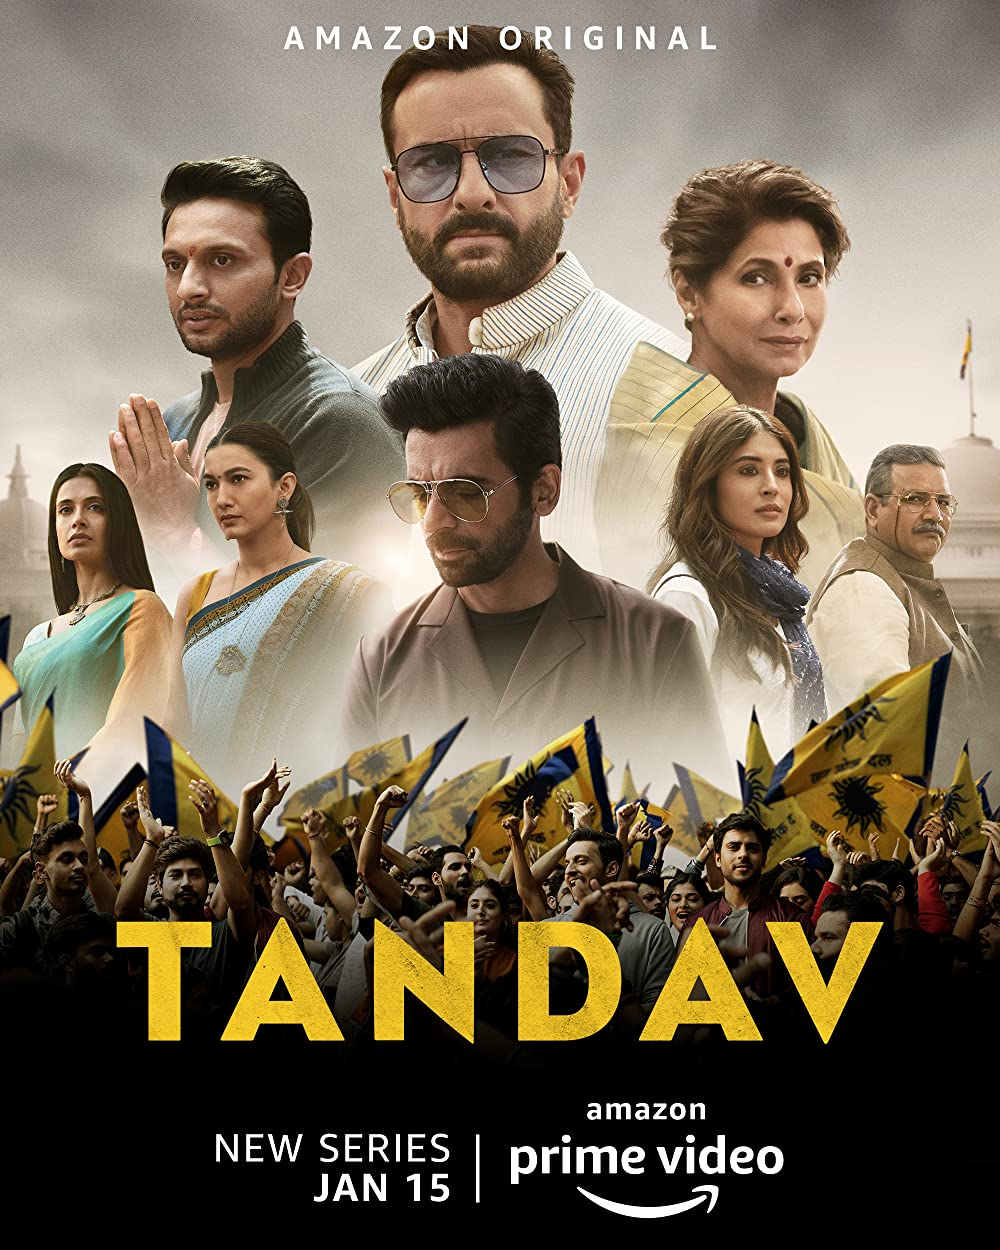 Tandav S01 (2021) Hindi Complete Amazon Original Web Series HDRip 950MB